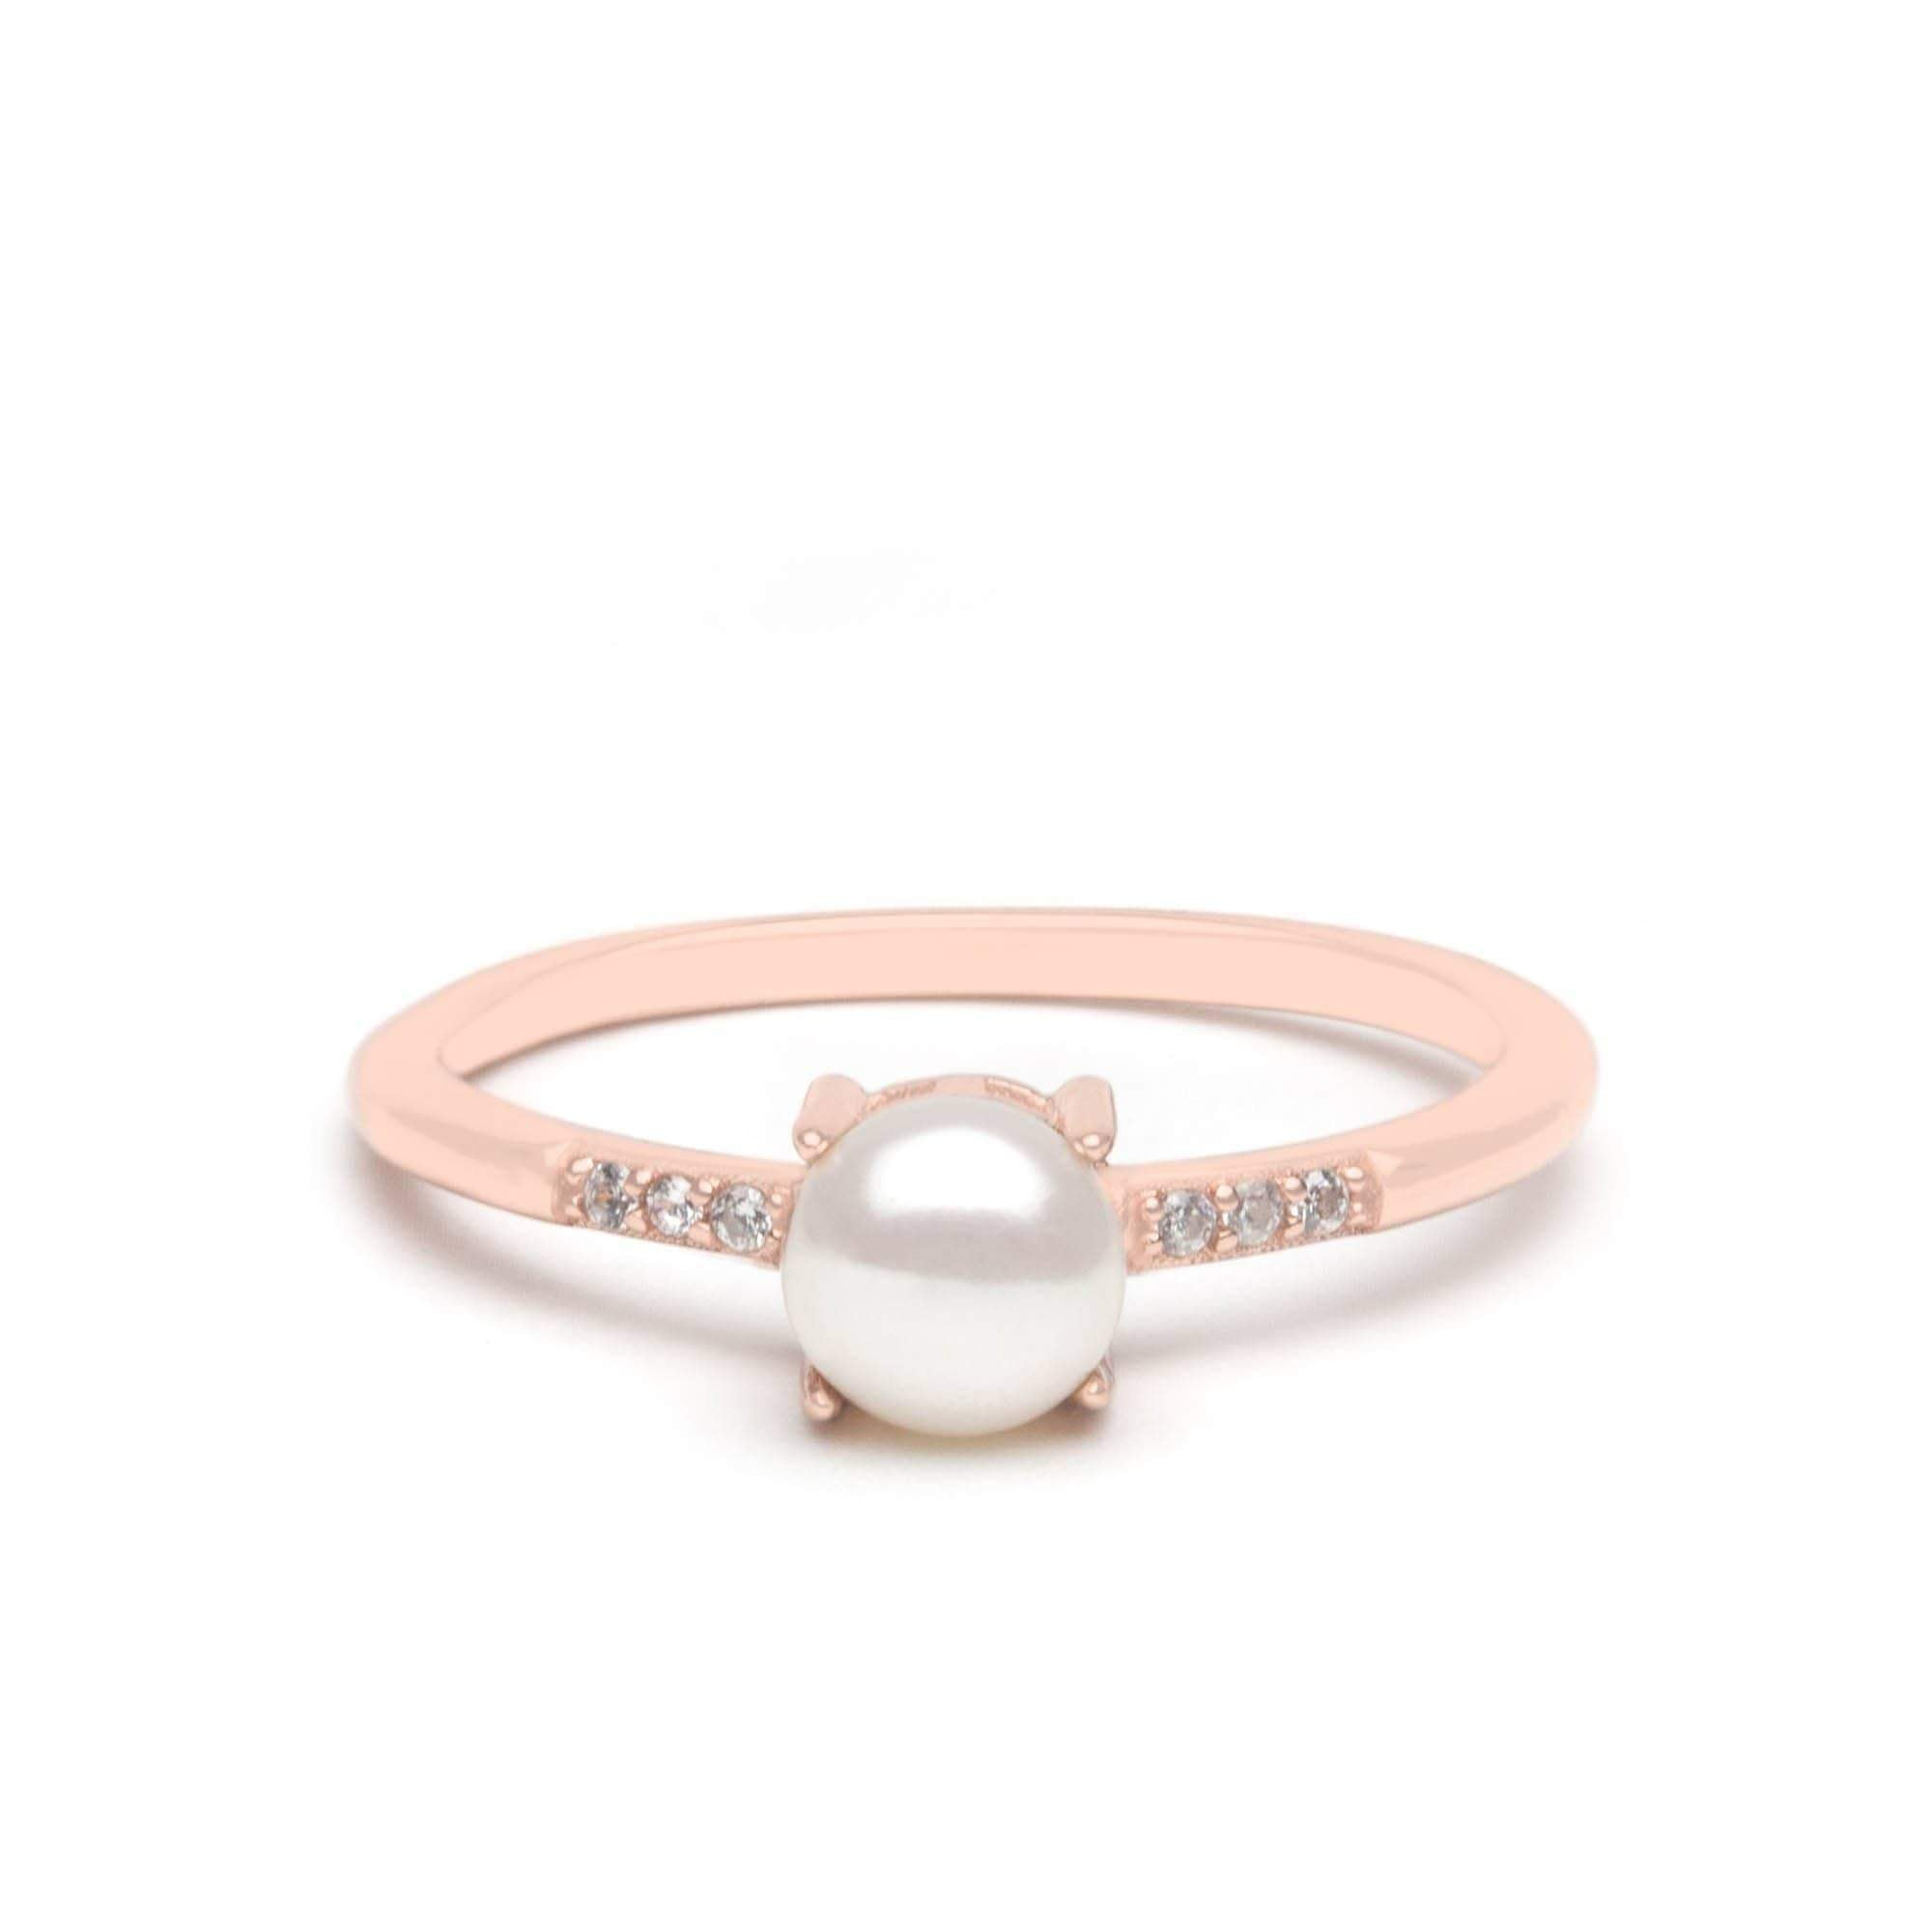 Jeanne's Jewels Rings Rose Gold / 5 Emilia